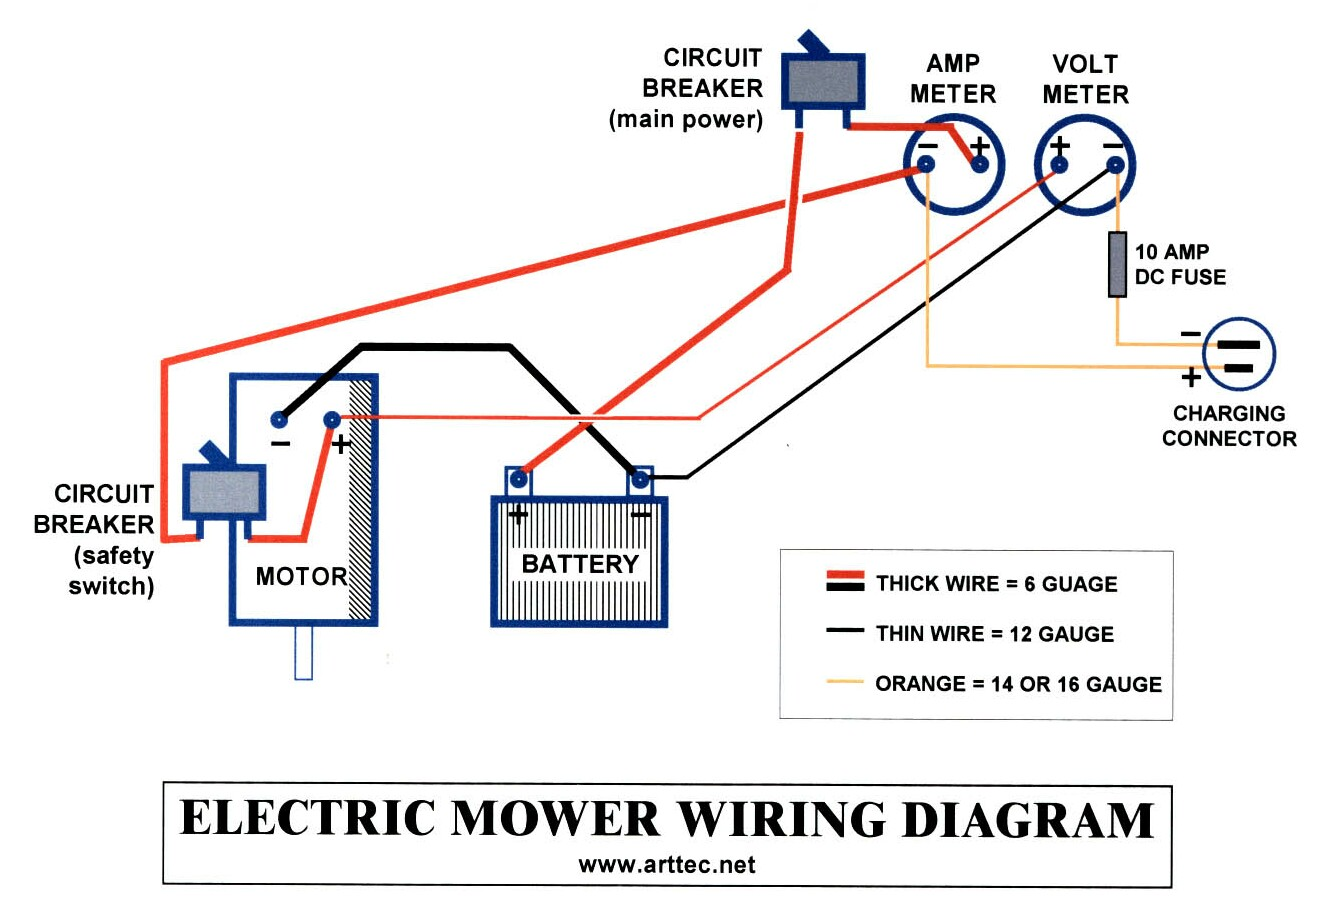 Club Car Ds Gas Wiring Diagram moreover 1992 1996ClubCarGasElectric likewise 1992 1996ClubCarGasElectric furthermore 2000 2005ClubCarGasElectric as well Solar Panel System Diagram Moreover 12 Volt. on club car 48v battery wiring diagram